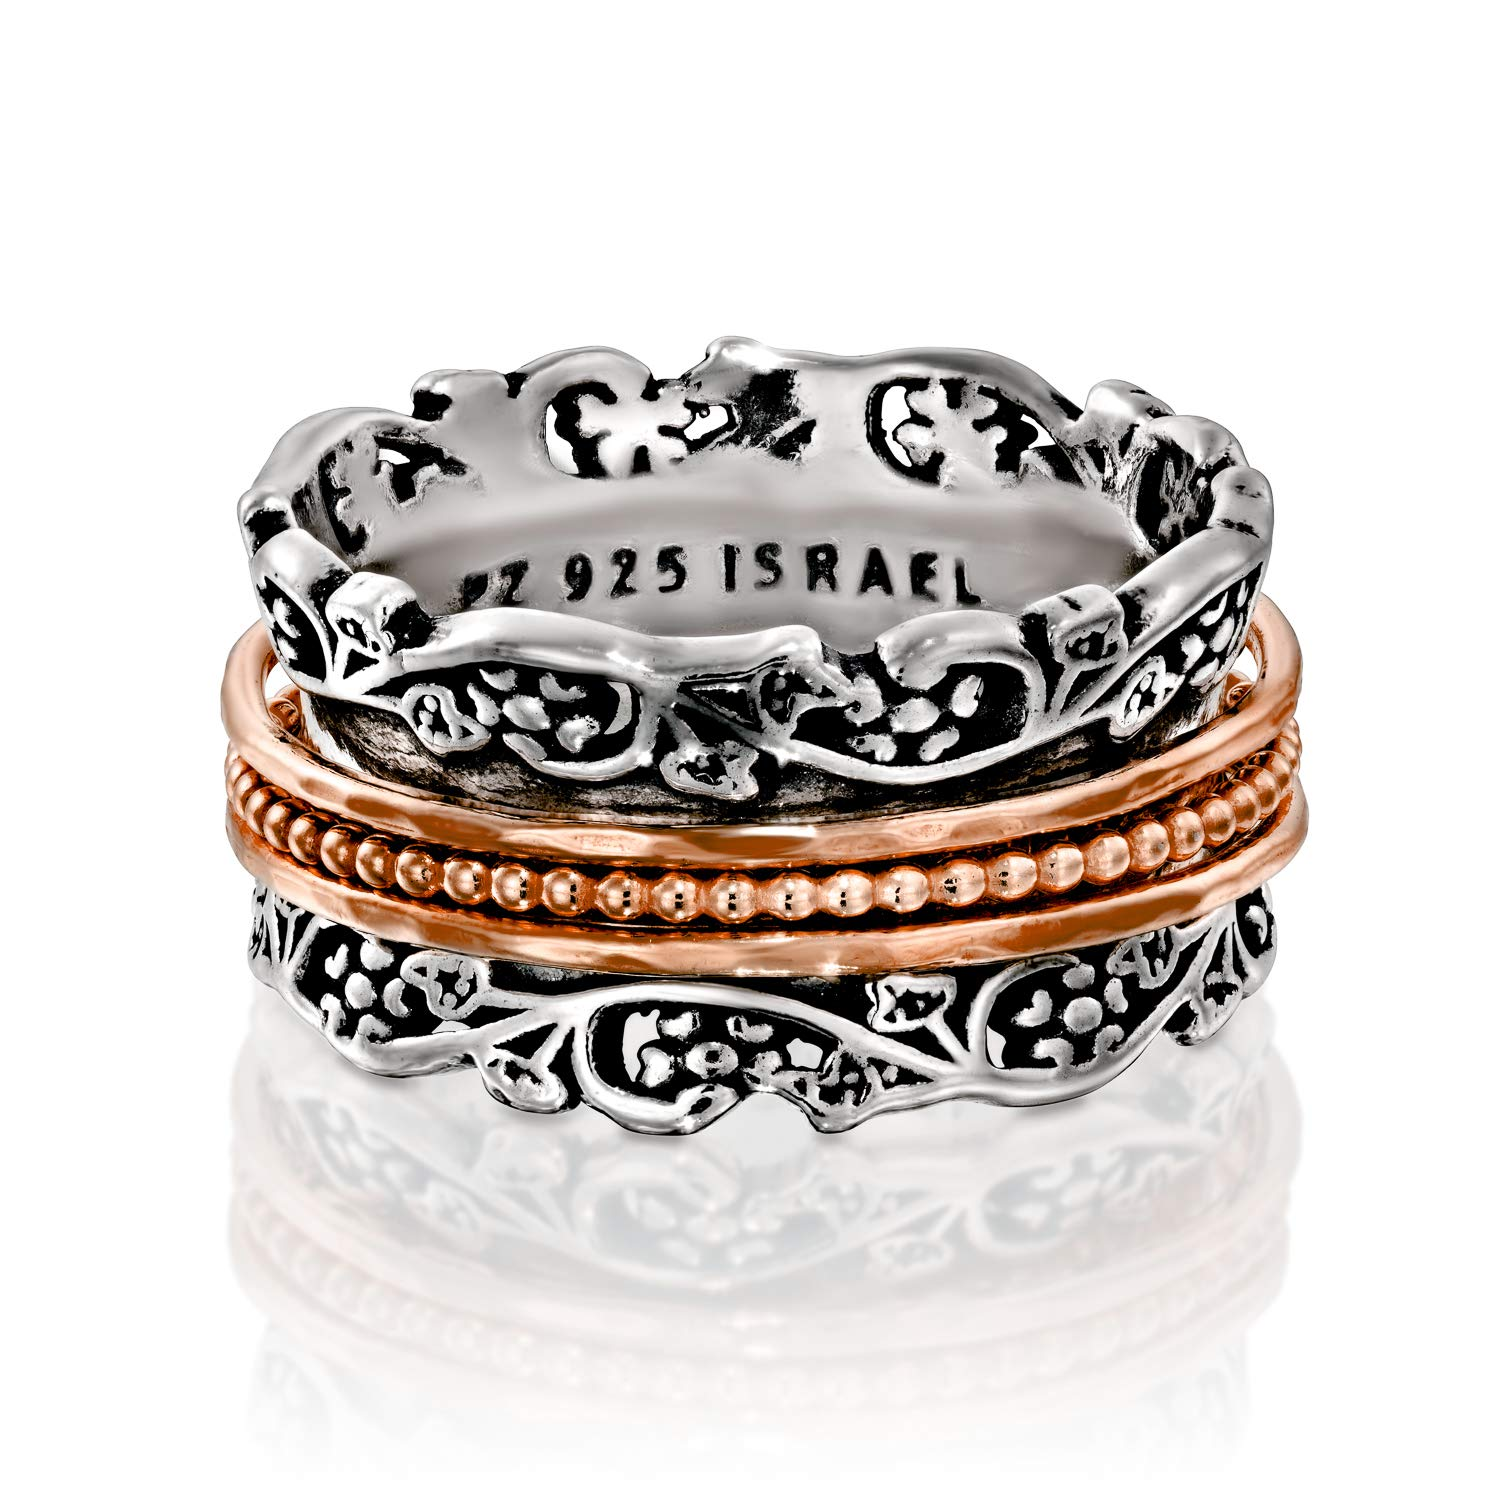 Paz Creations .925 Sterling Silver and Rose Gold Over Silver Spinner Ring (9), Made in Israel by PZ (Image #1)